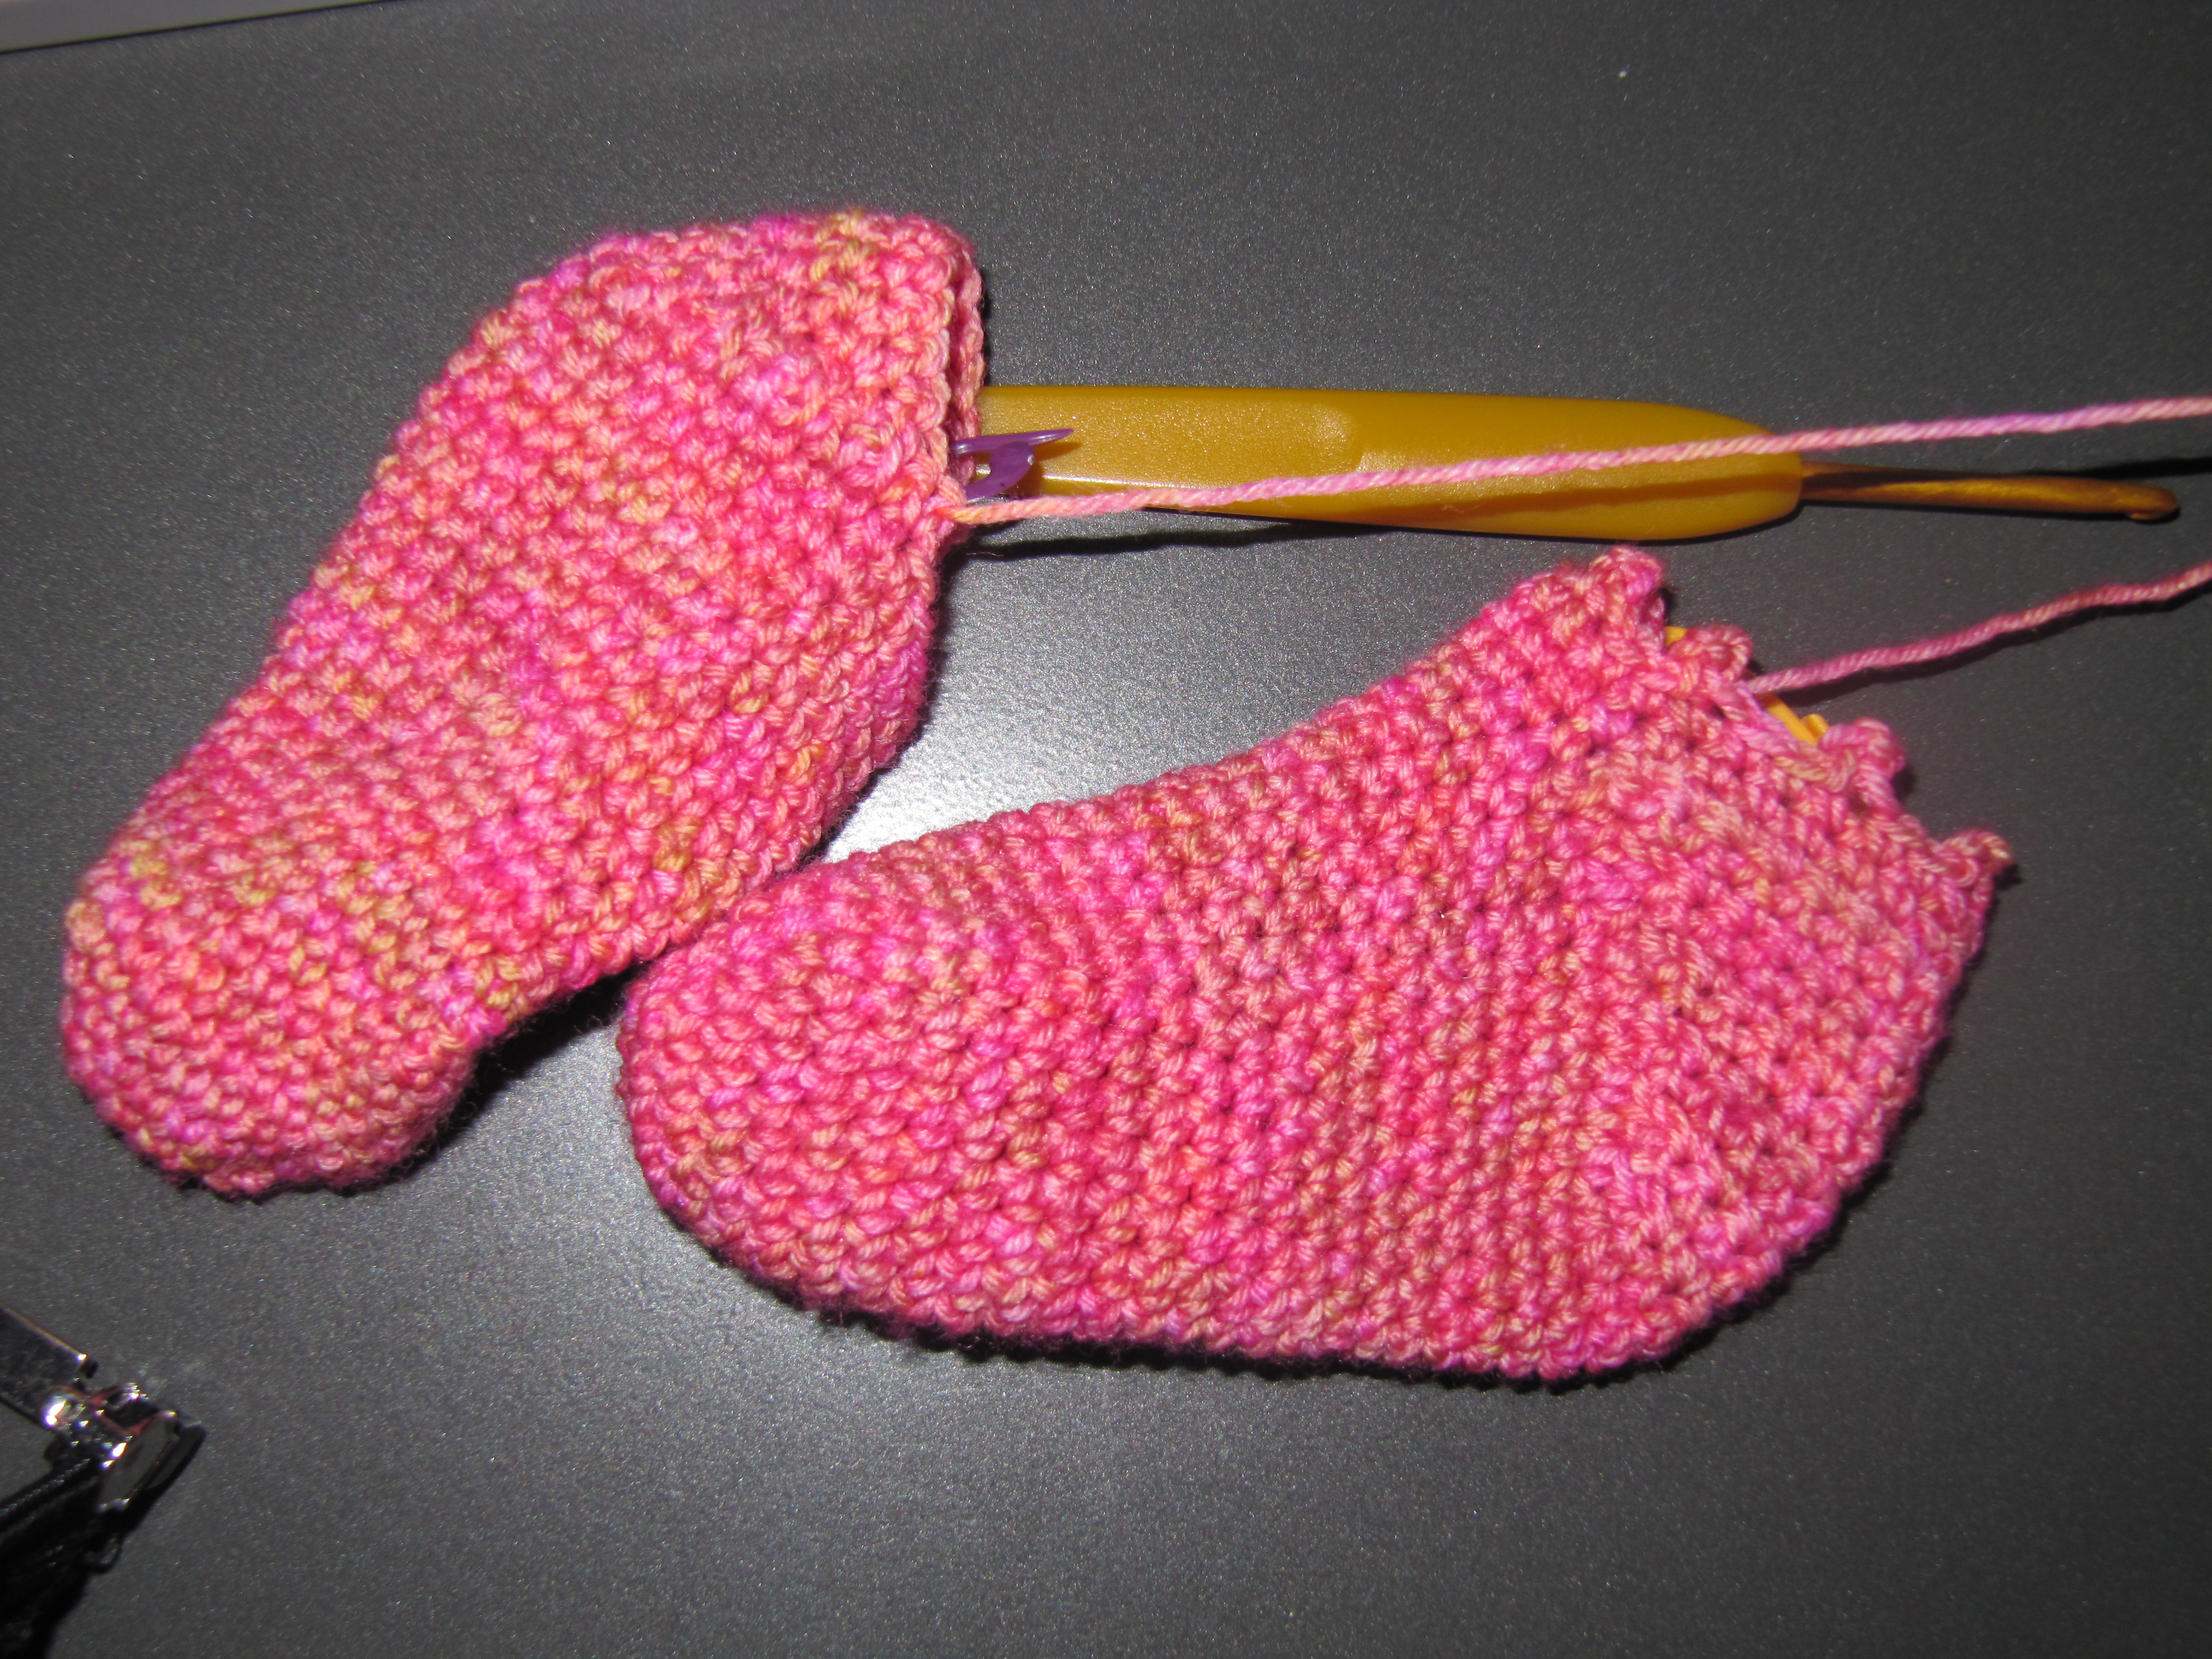 Wip Work In Progress Wednesday Crocheted Baby Socks With Holiday